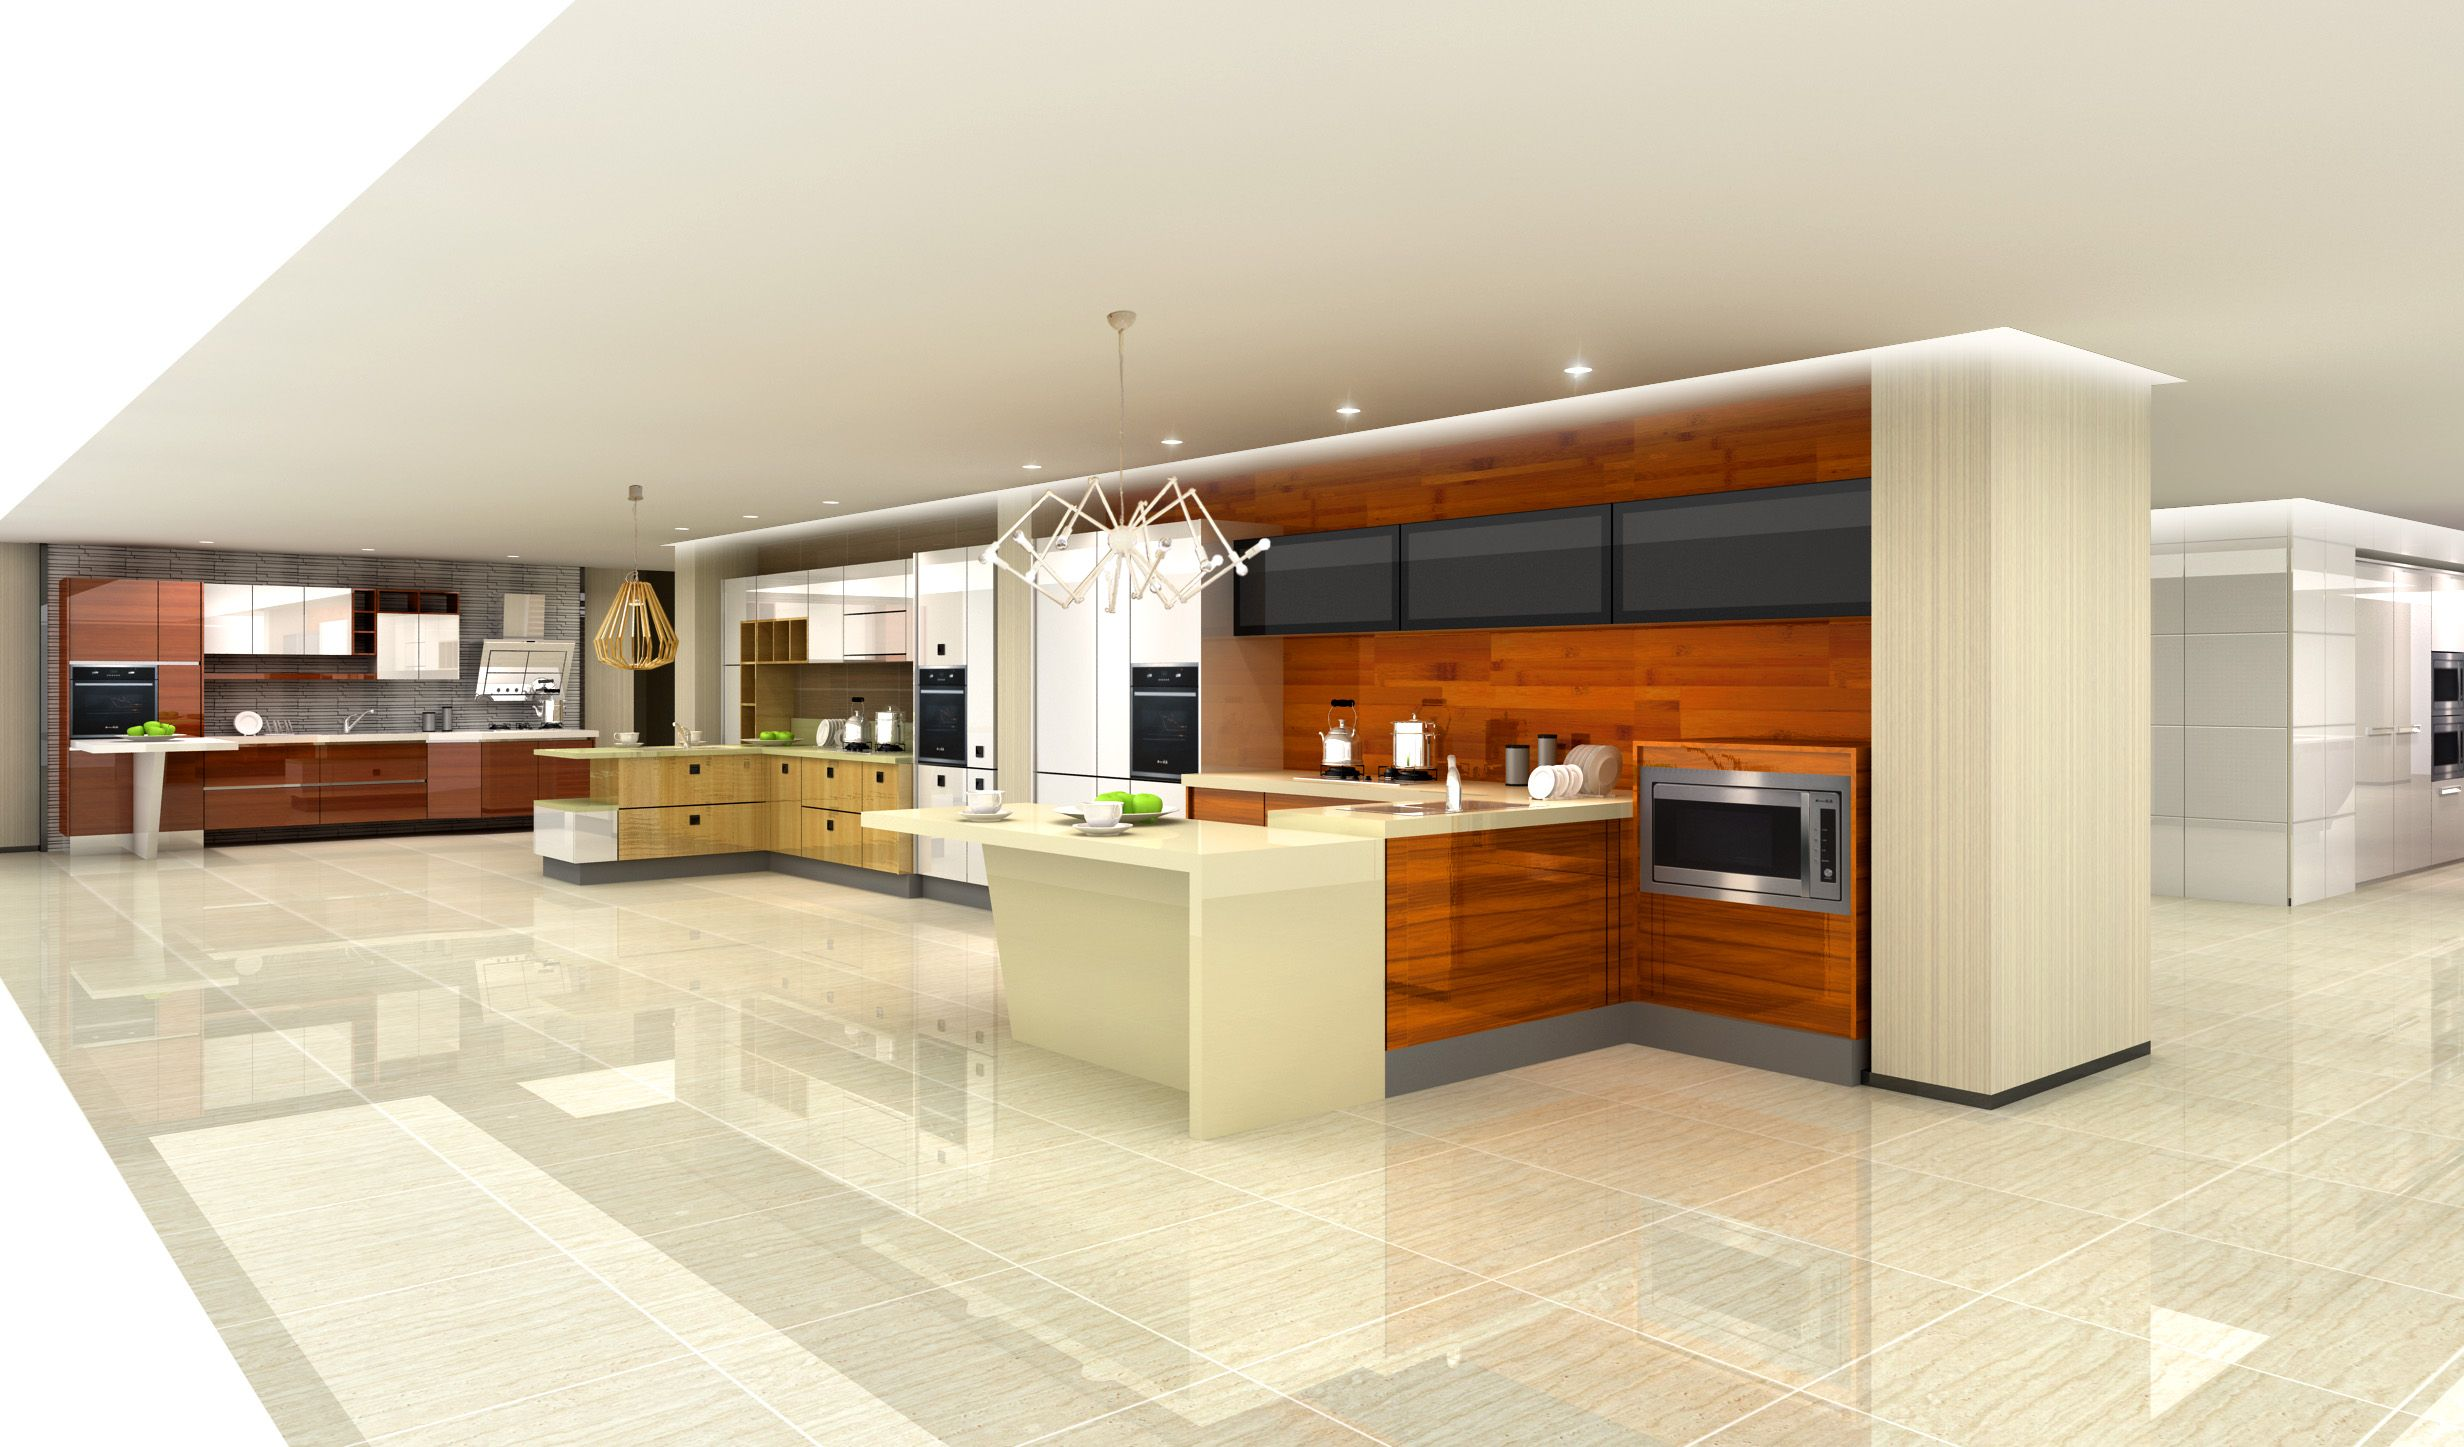 Modern Kitchen Cabinet With Wood Veneer Finish Modern Kitchen Cabinets Kitchen Cabinets White Kitchen Cabinets